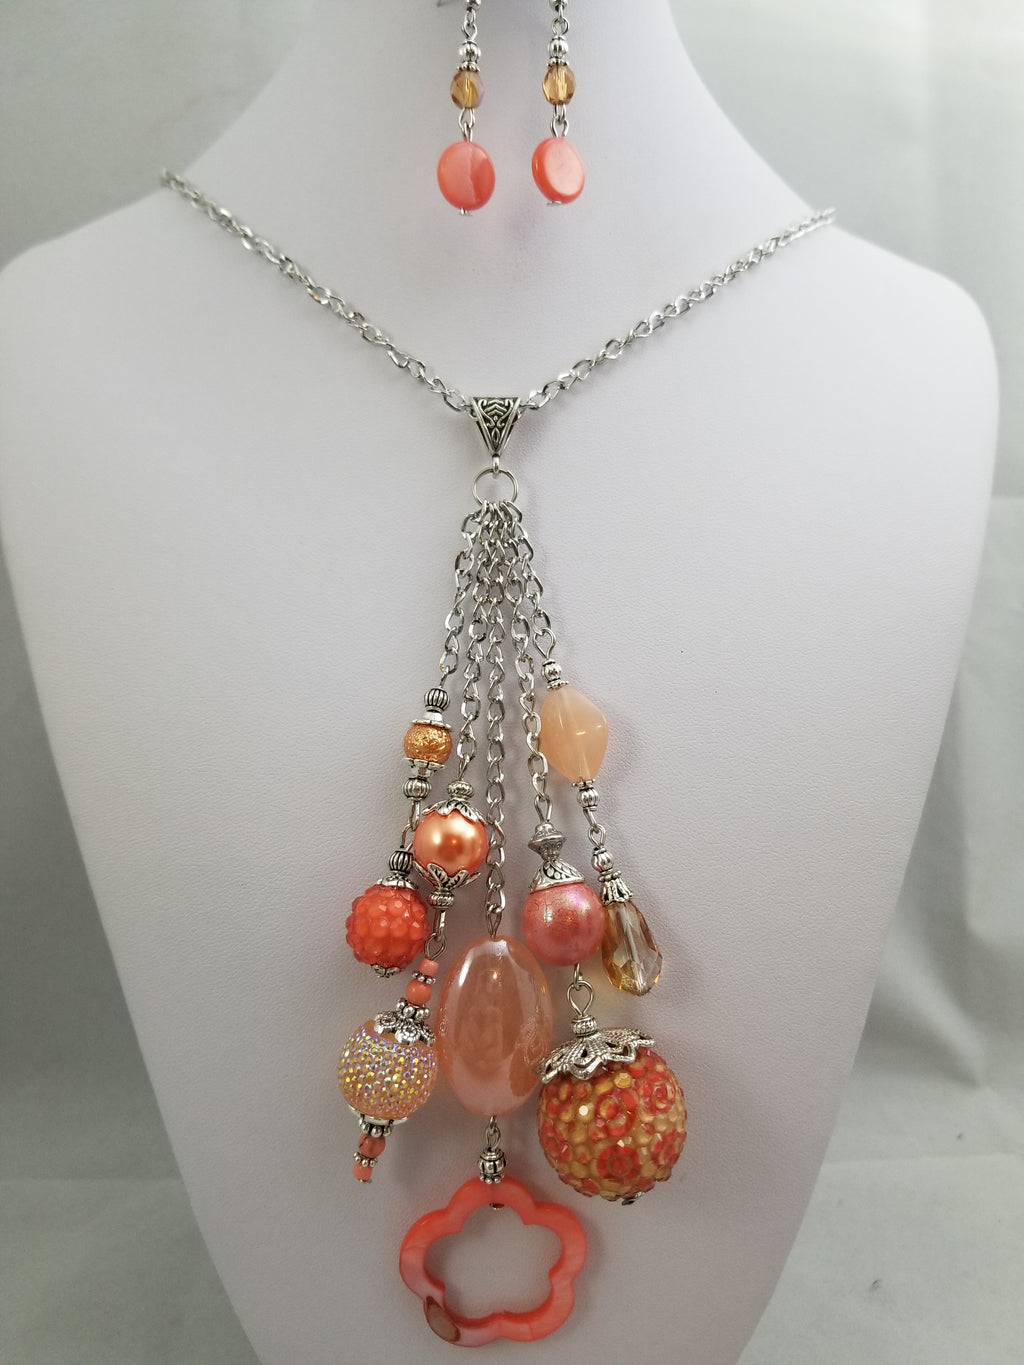 Fuzzy Navel Necklace with Earrings